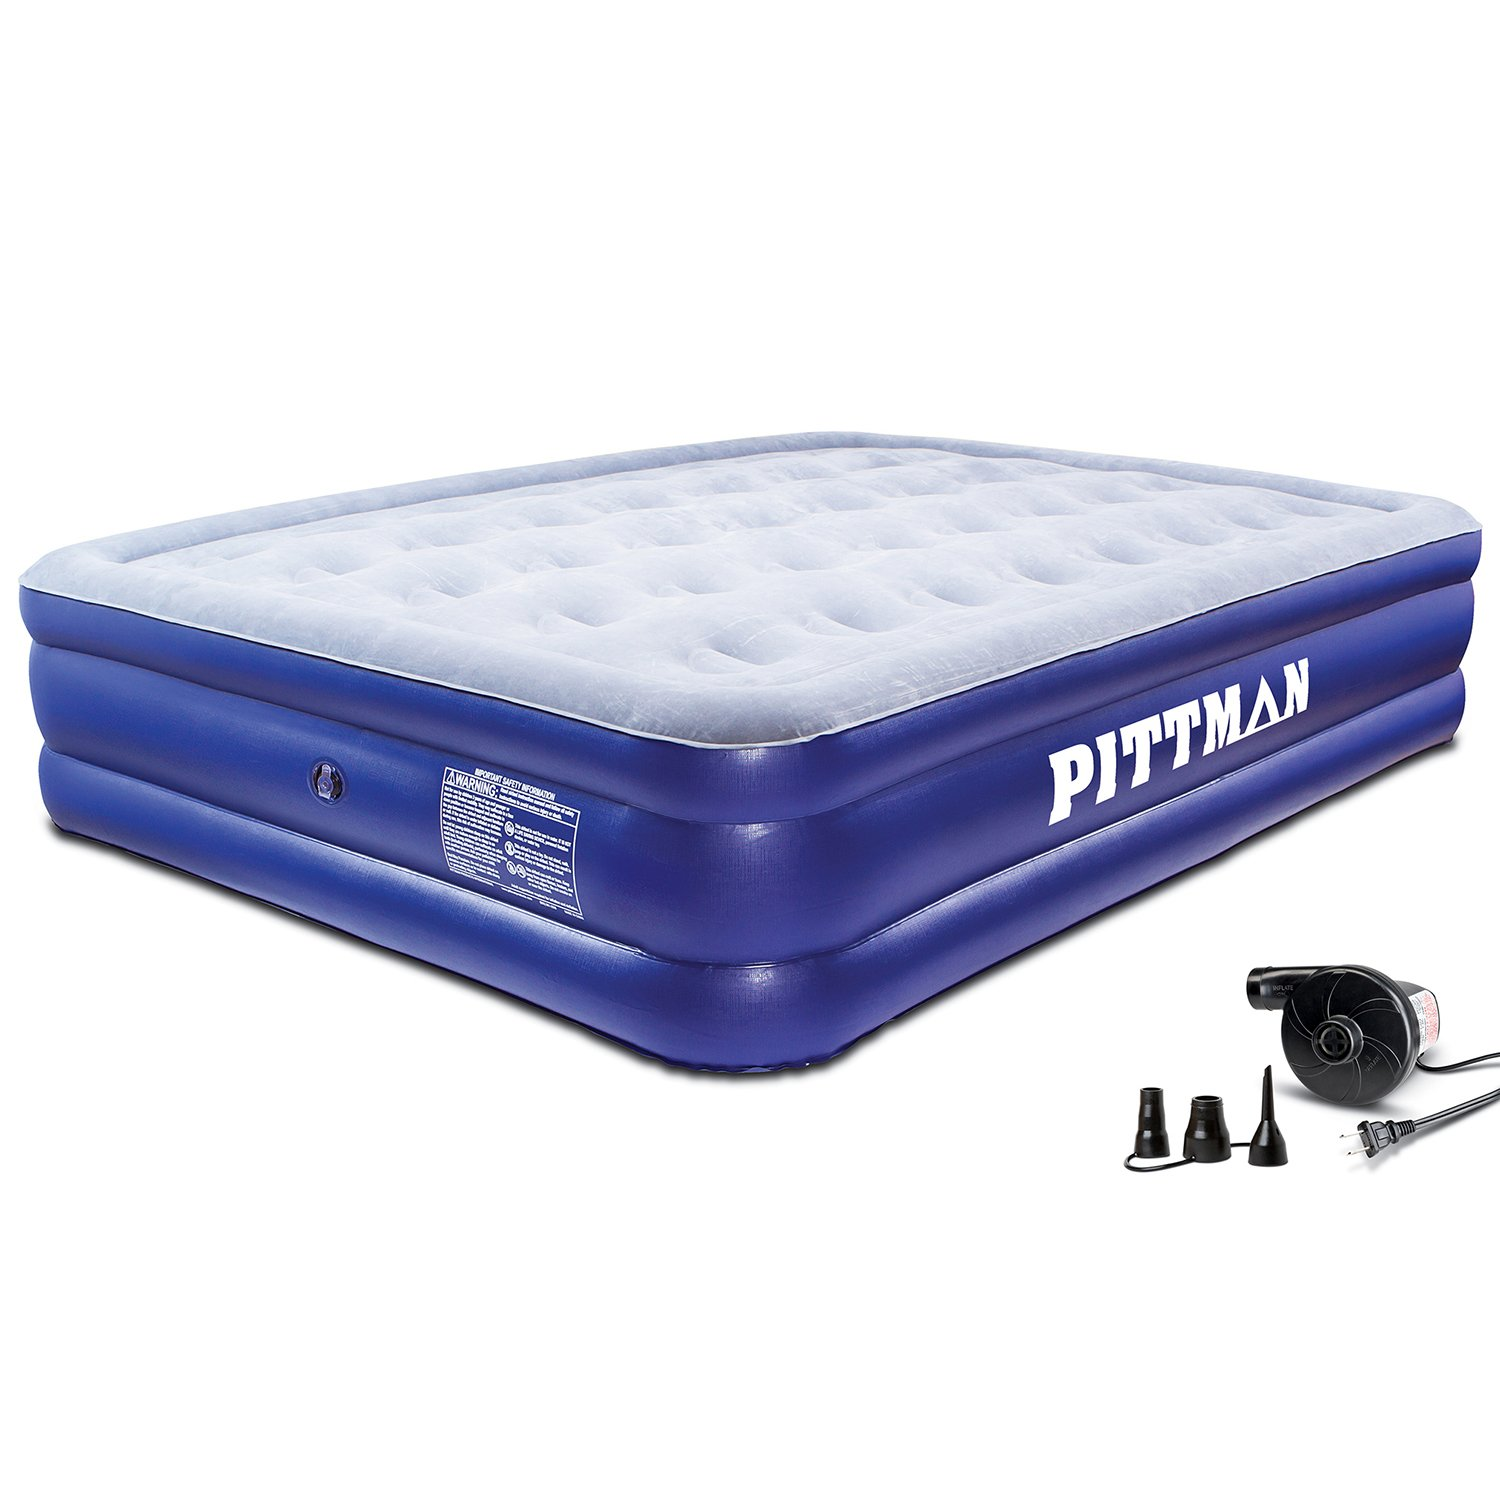 Pittman Queen Double High Air Mattress with Portable Electric Air Pump Pittman Outdoors PPI QDHPAC